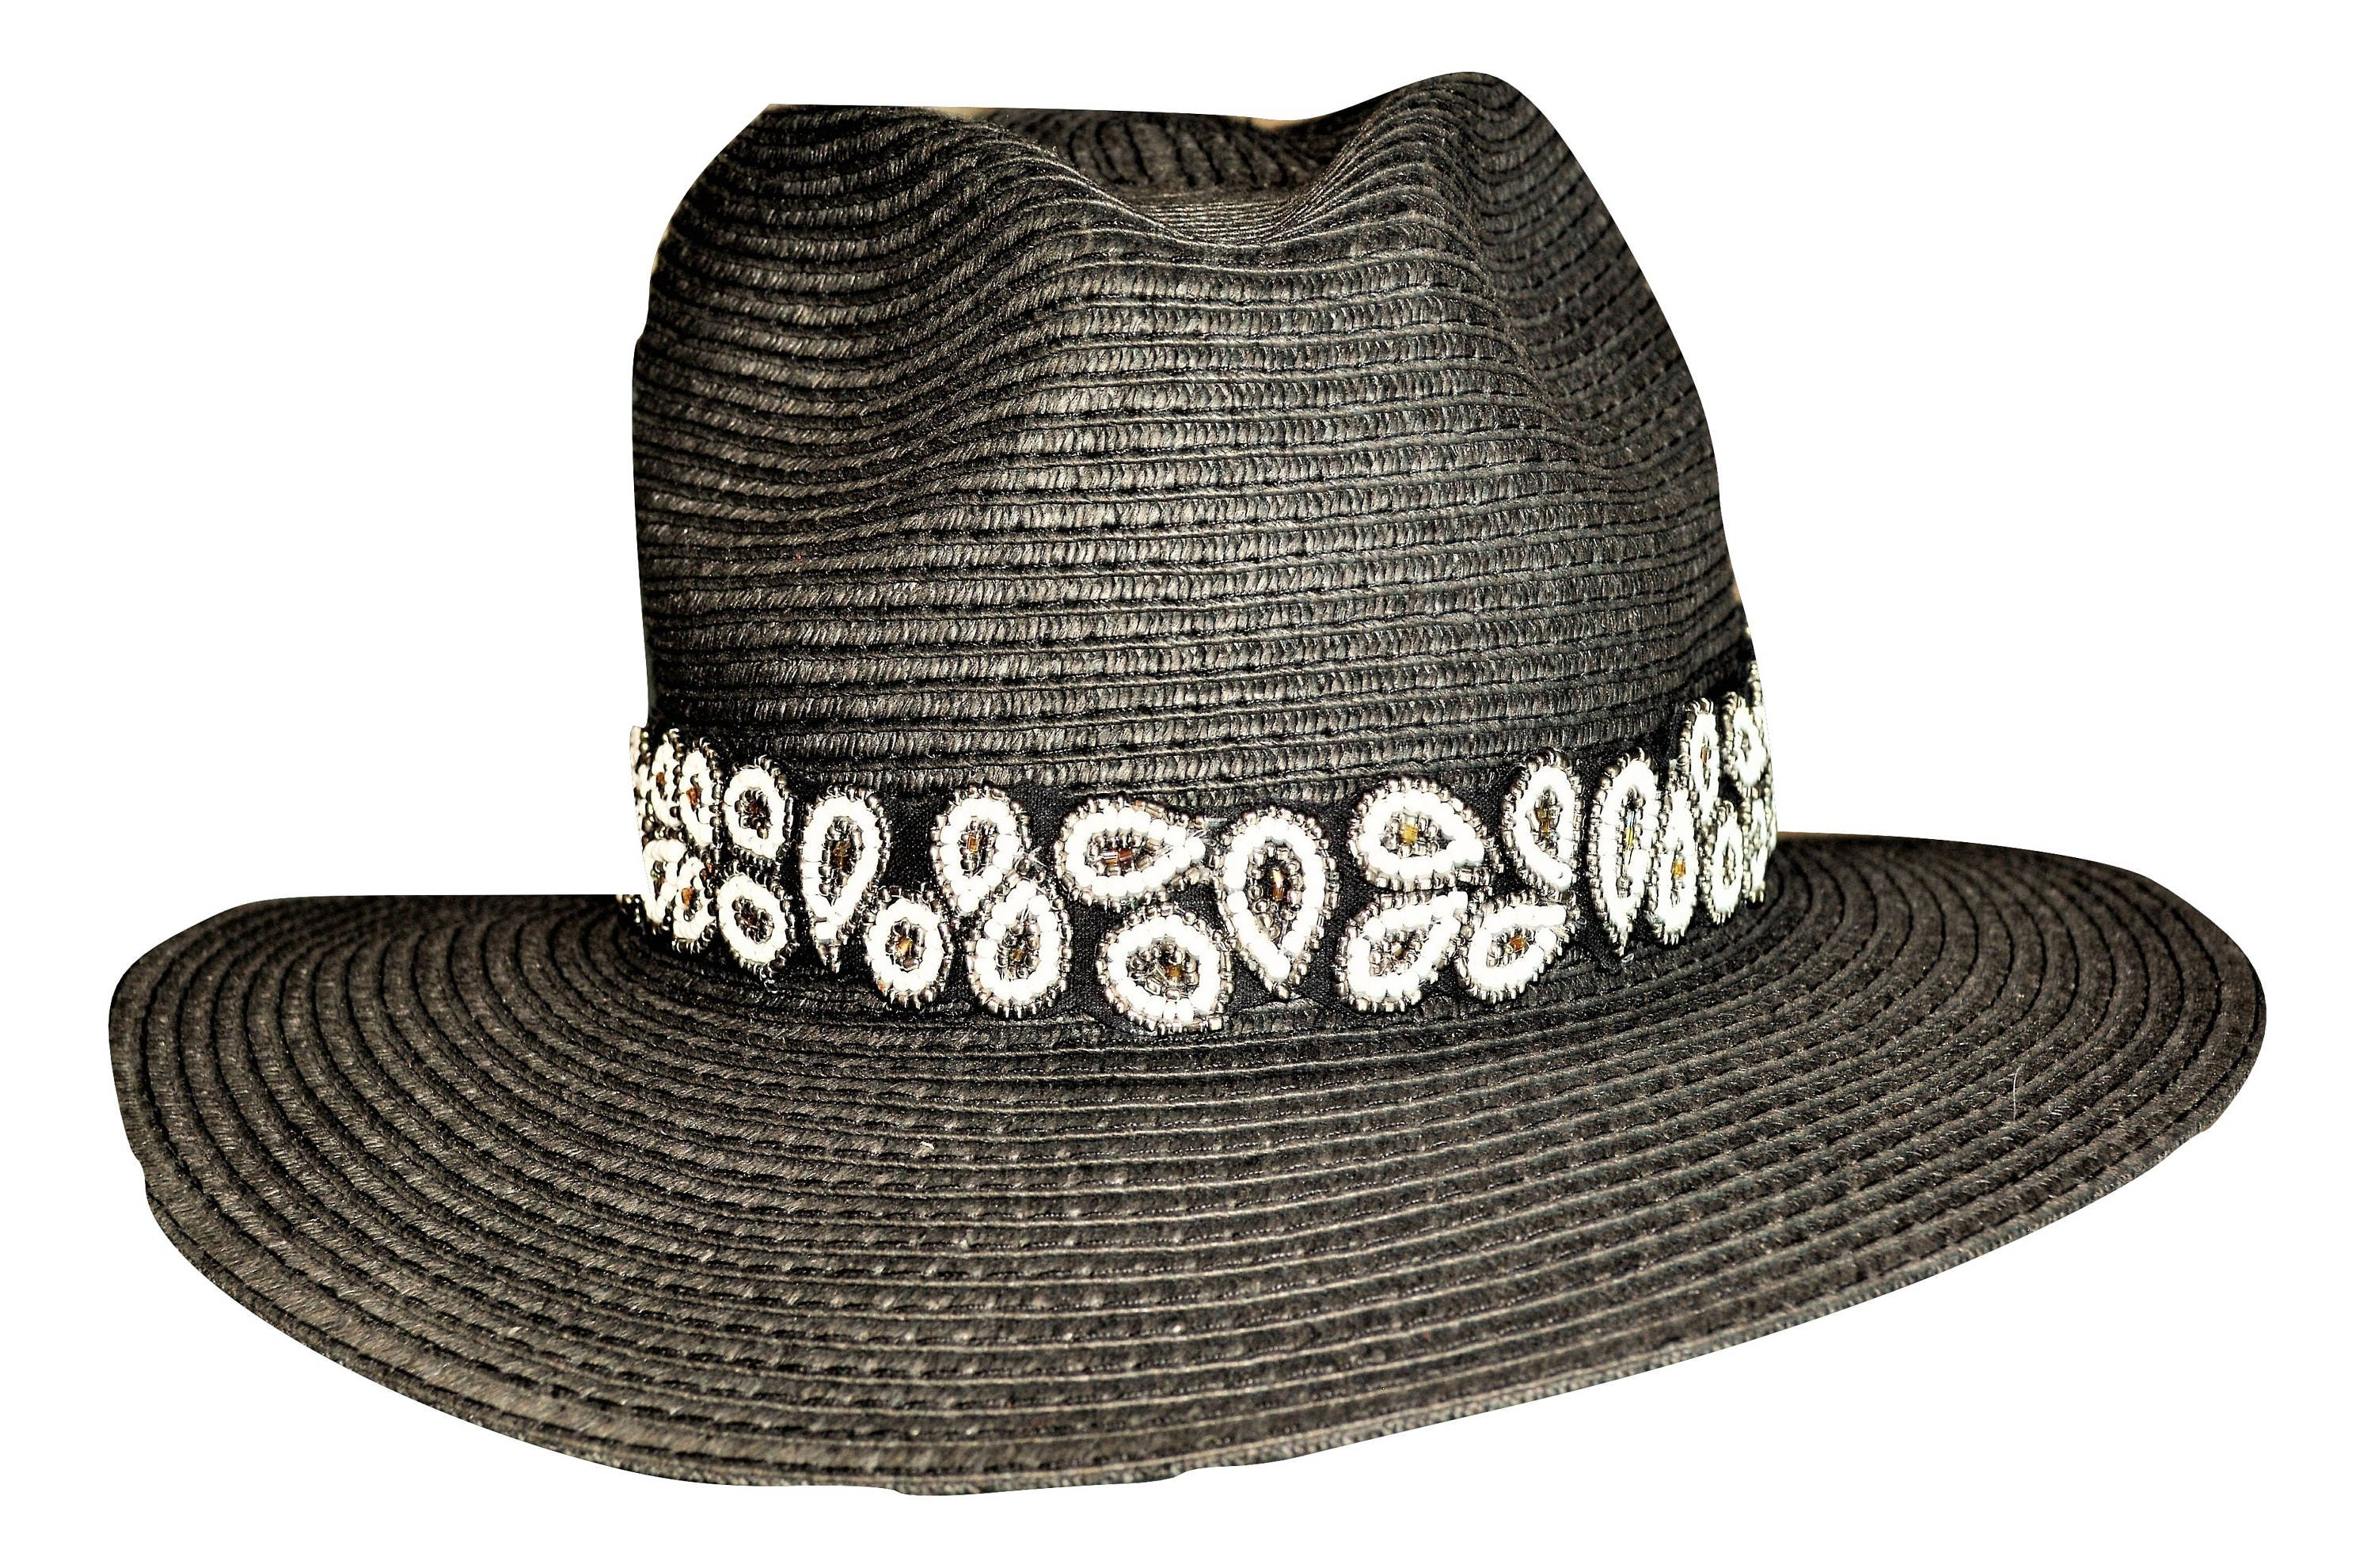 114d1719190 Paisley hat band black white hat band adjustable hatband jpg 3000x1981 Paisley  hat